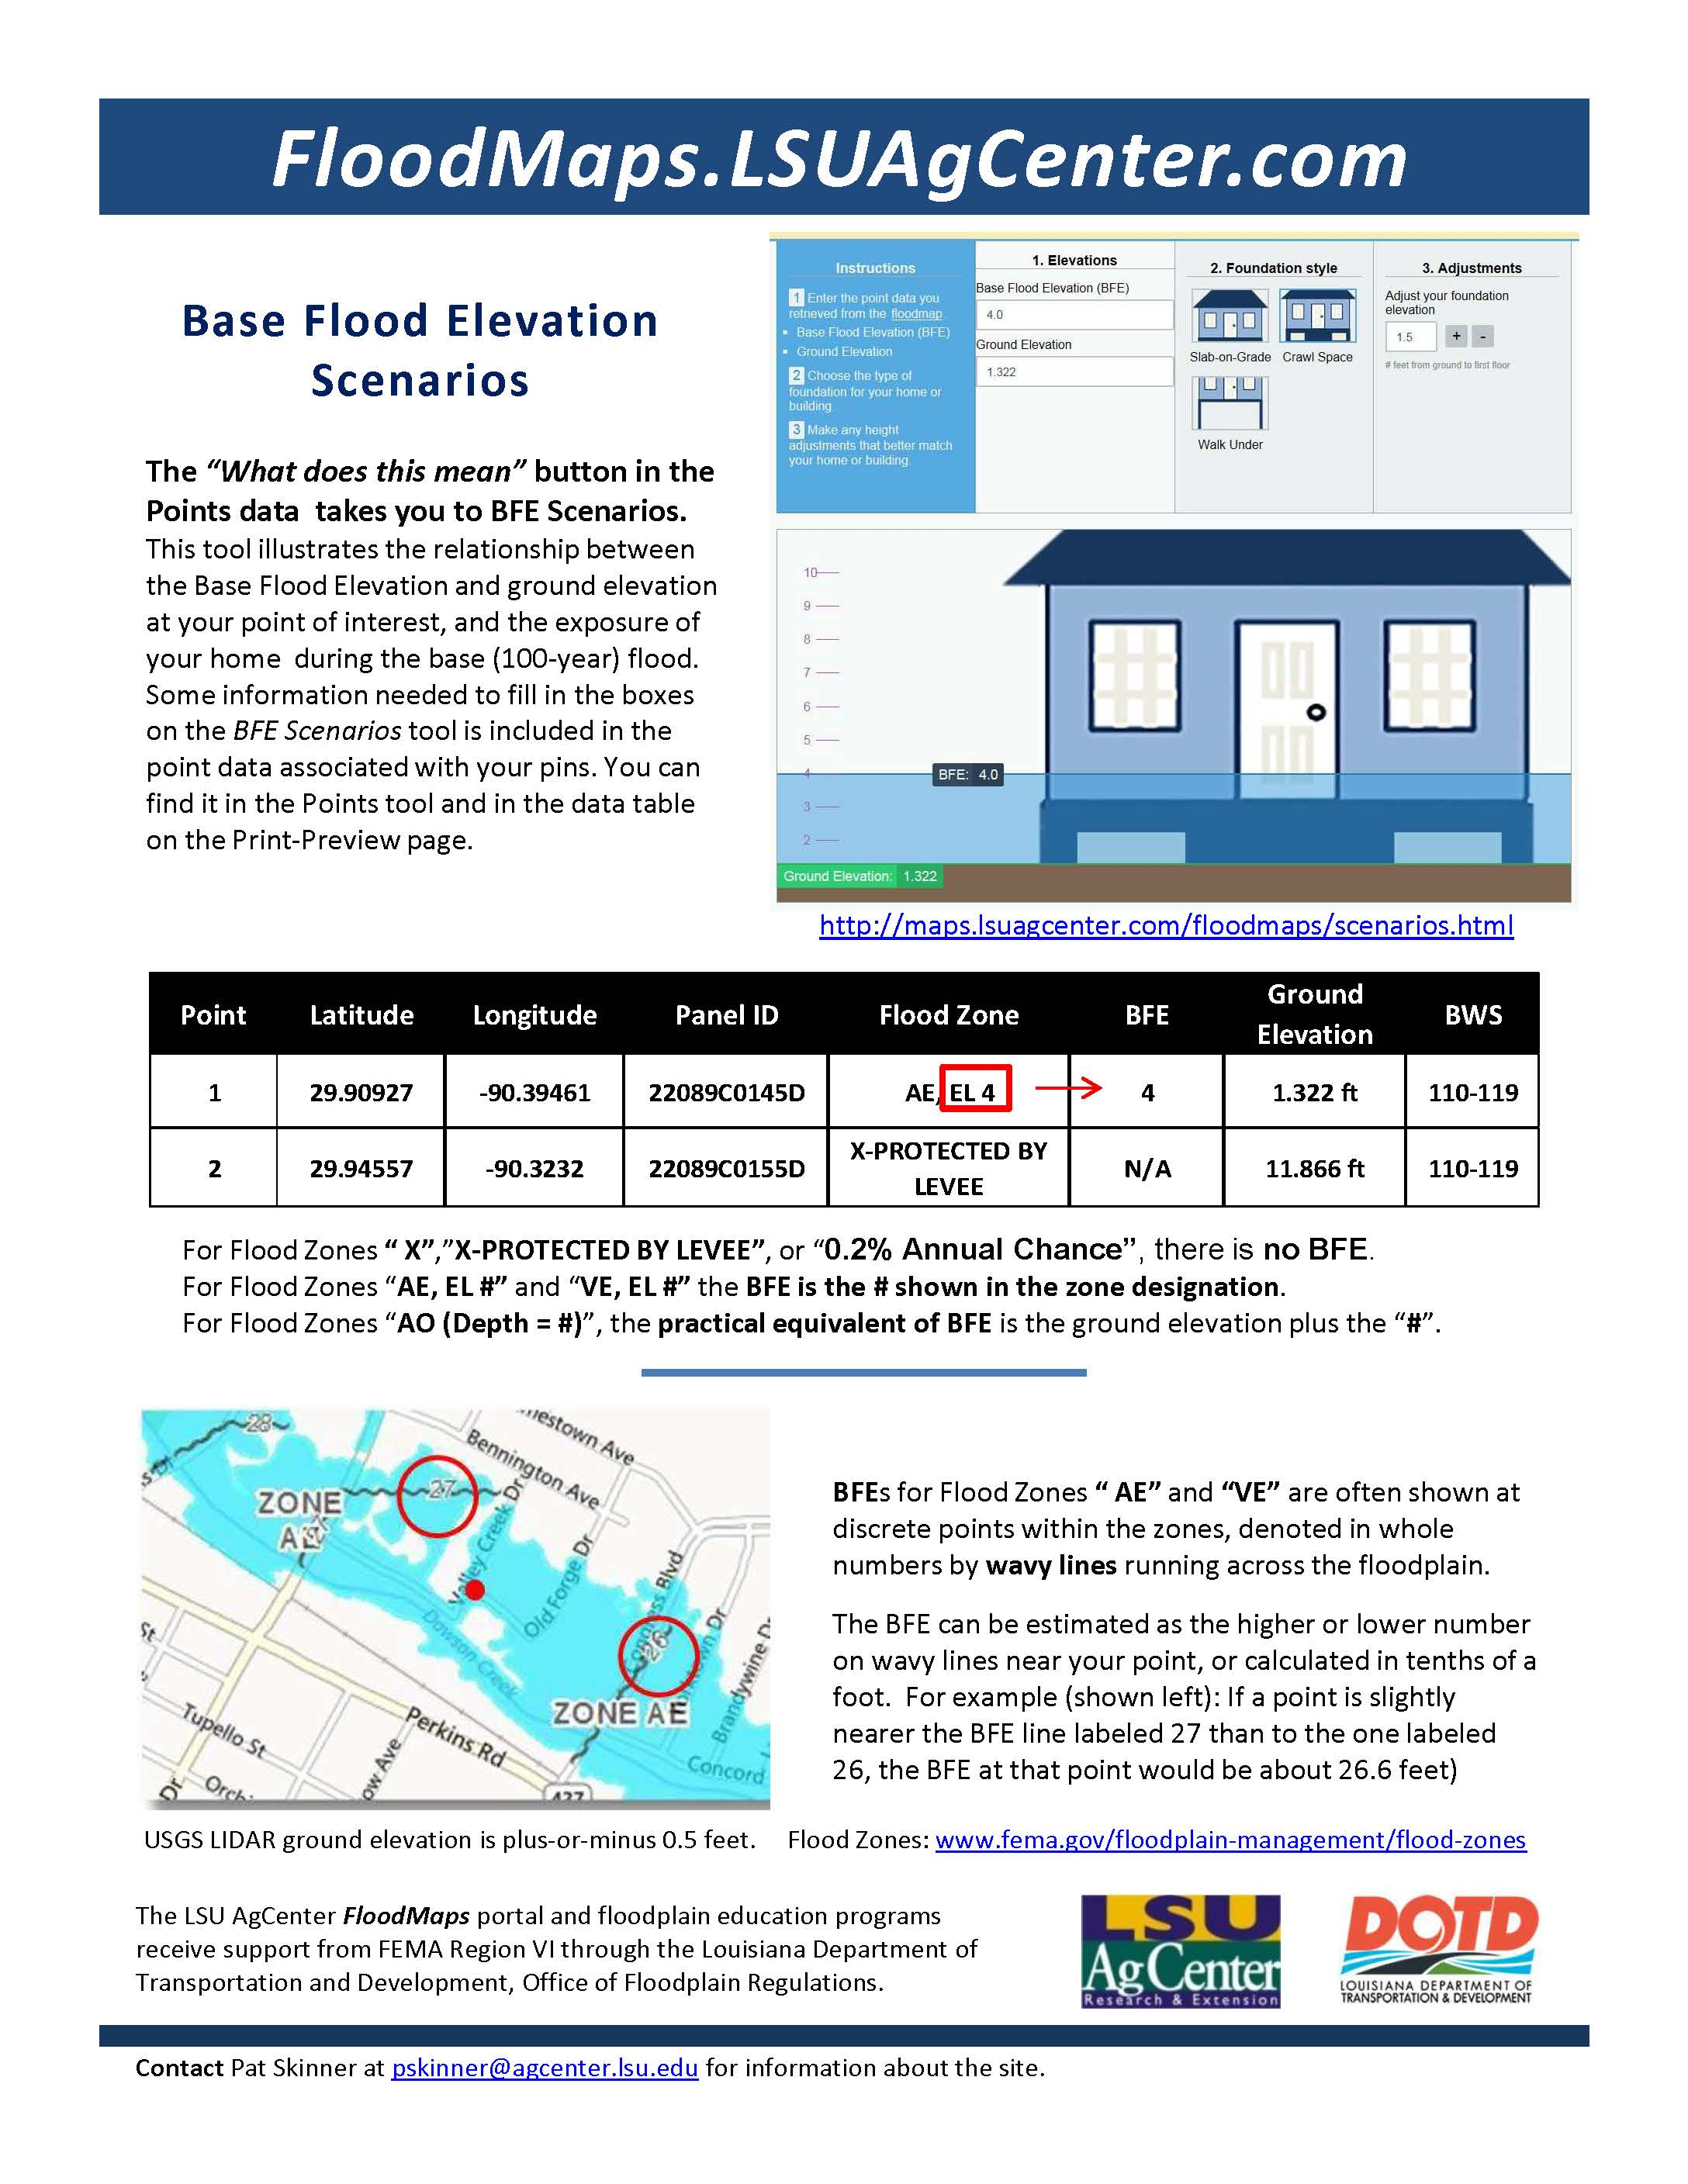 Tips for Using the FloodMaps Portal